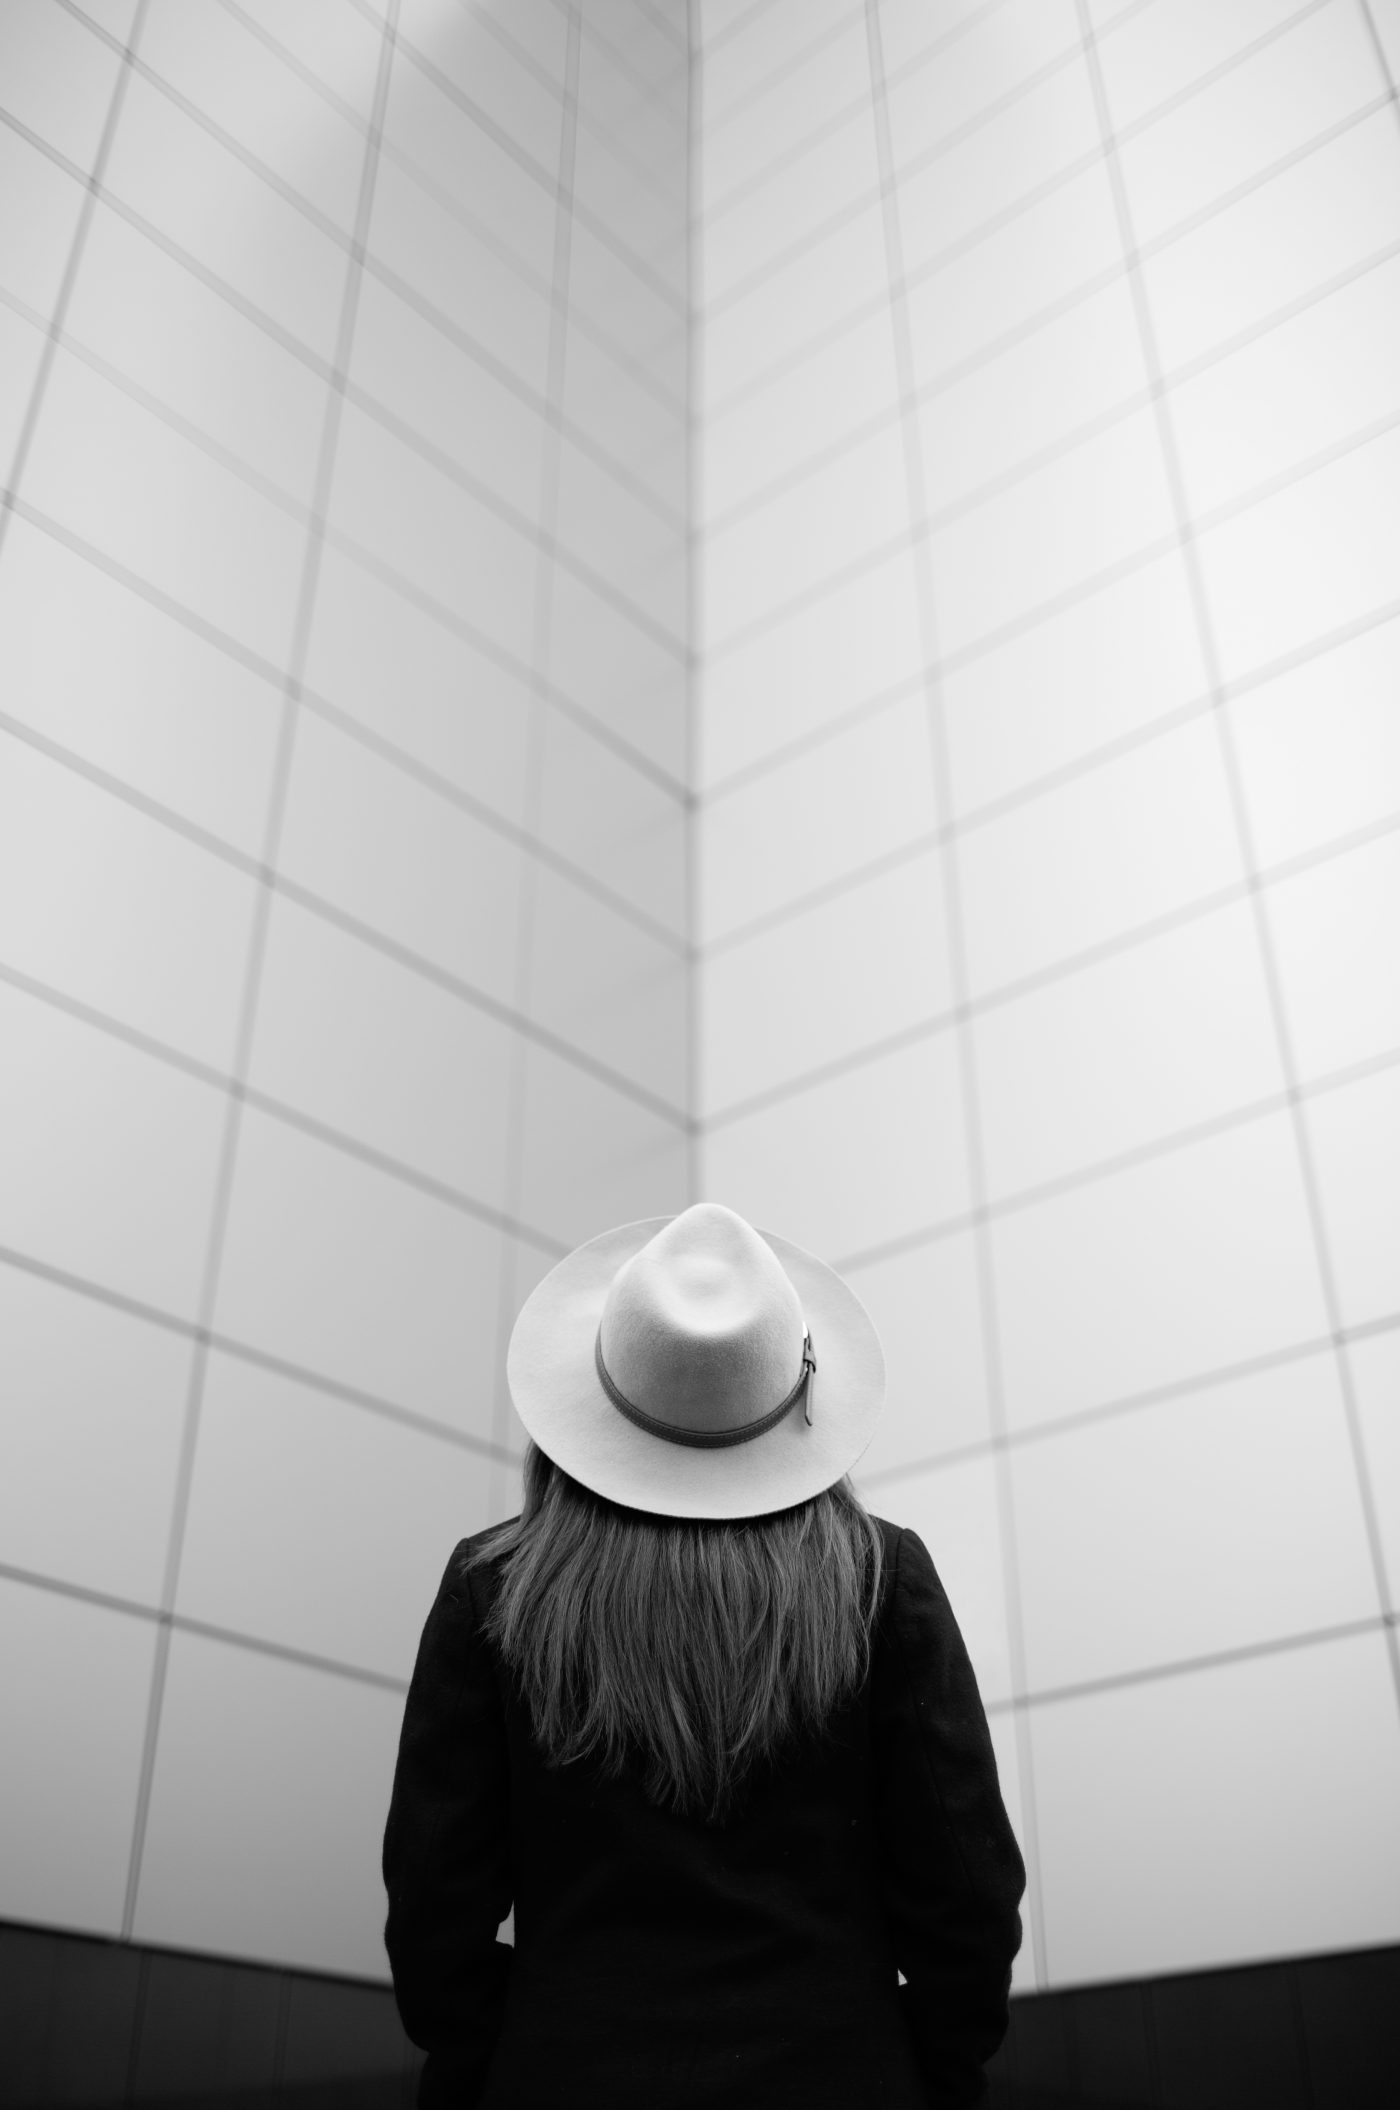 White and black picture of a woman in a hat.